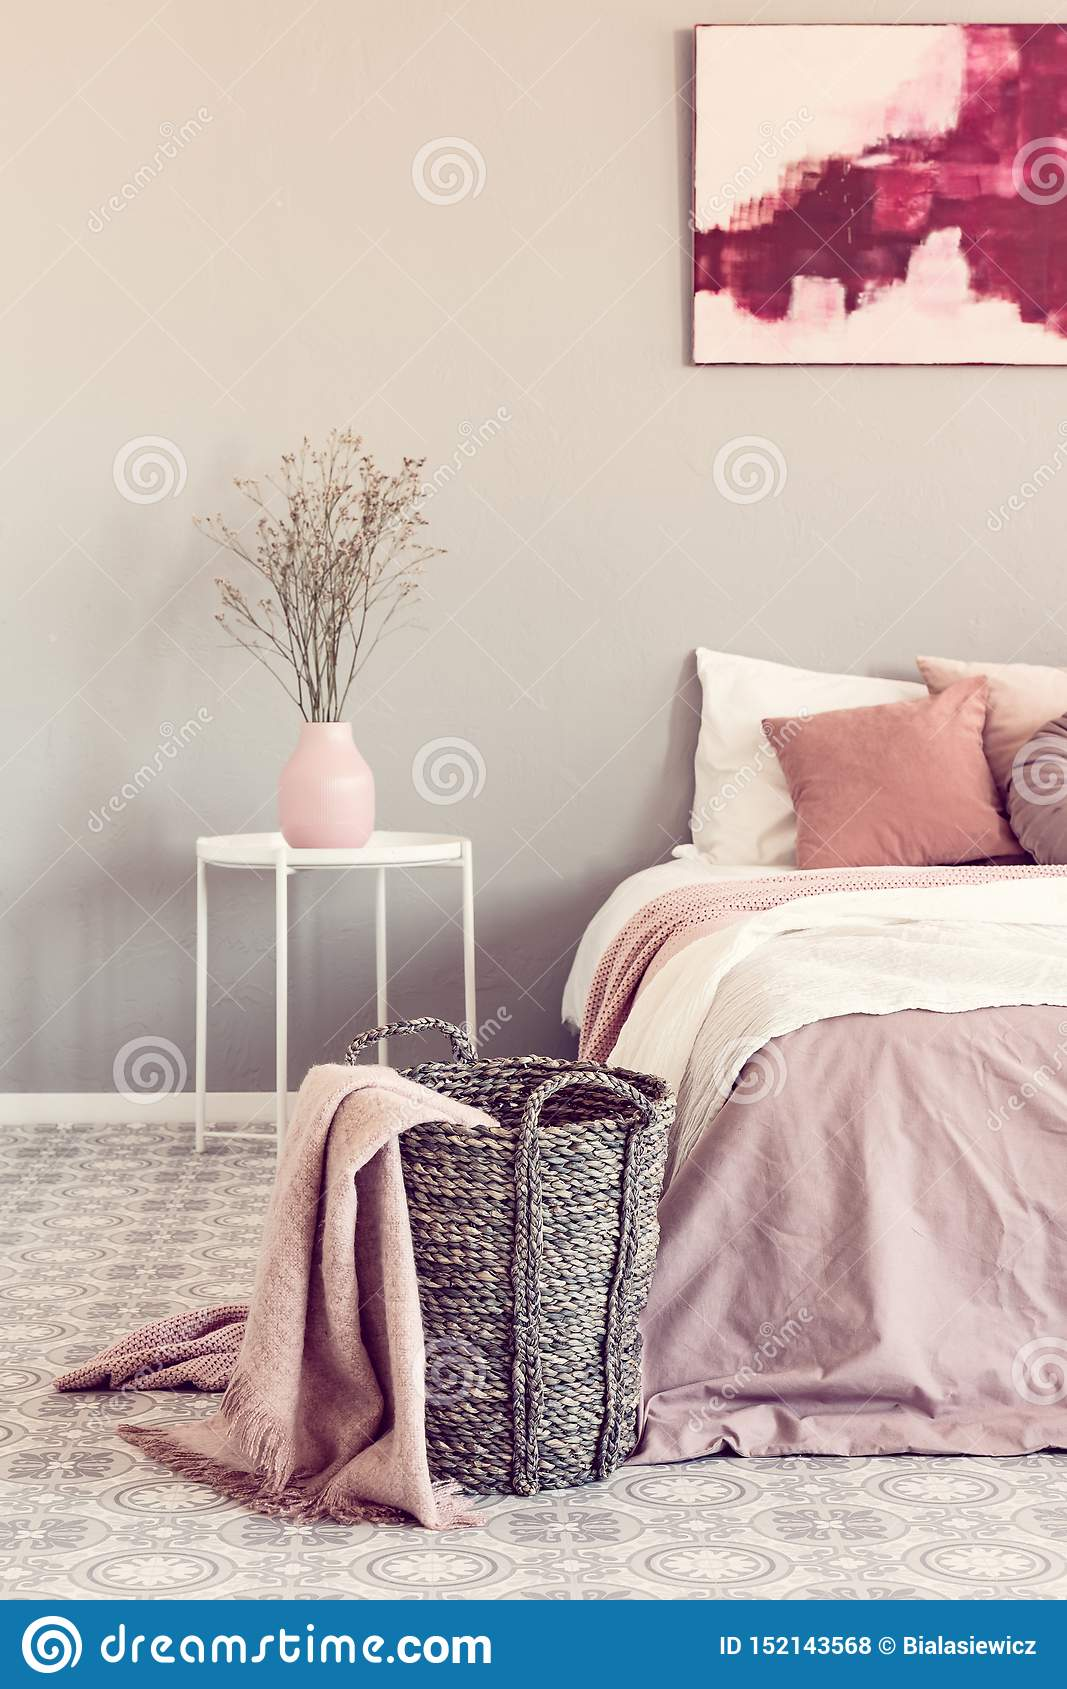 2 166 Basket Bedroom Photos Free Royalty Free Stock Photos From Dreamstime